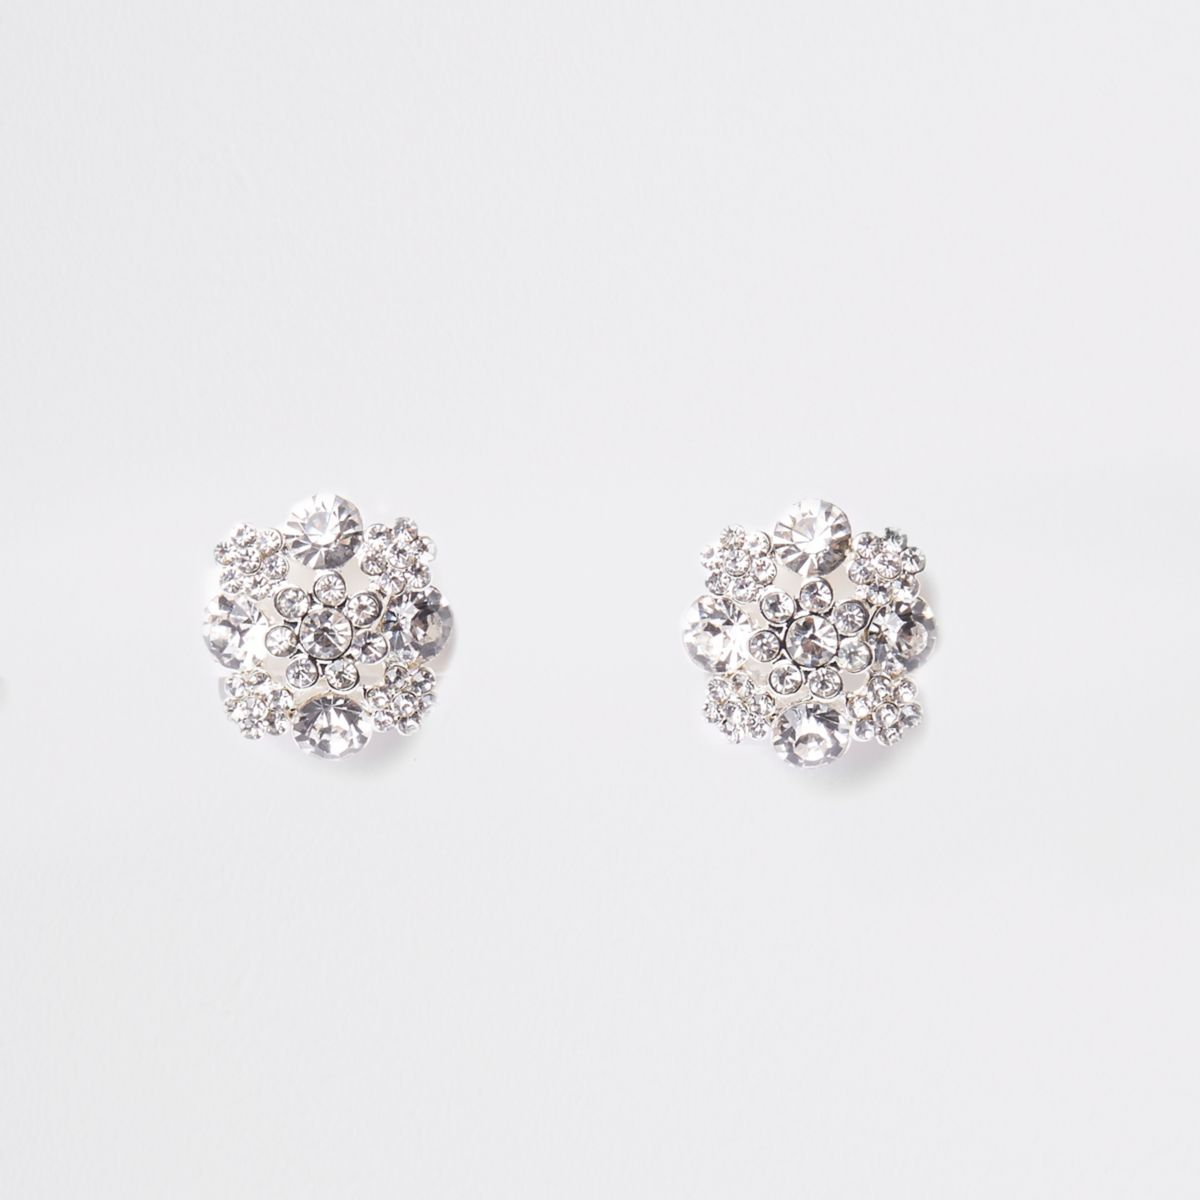 White rhinestone clip on earrings